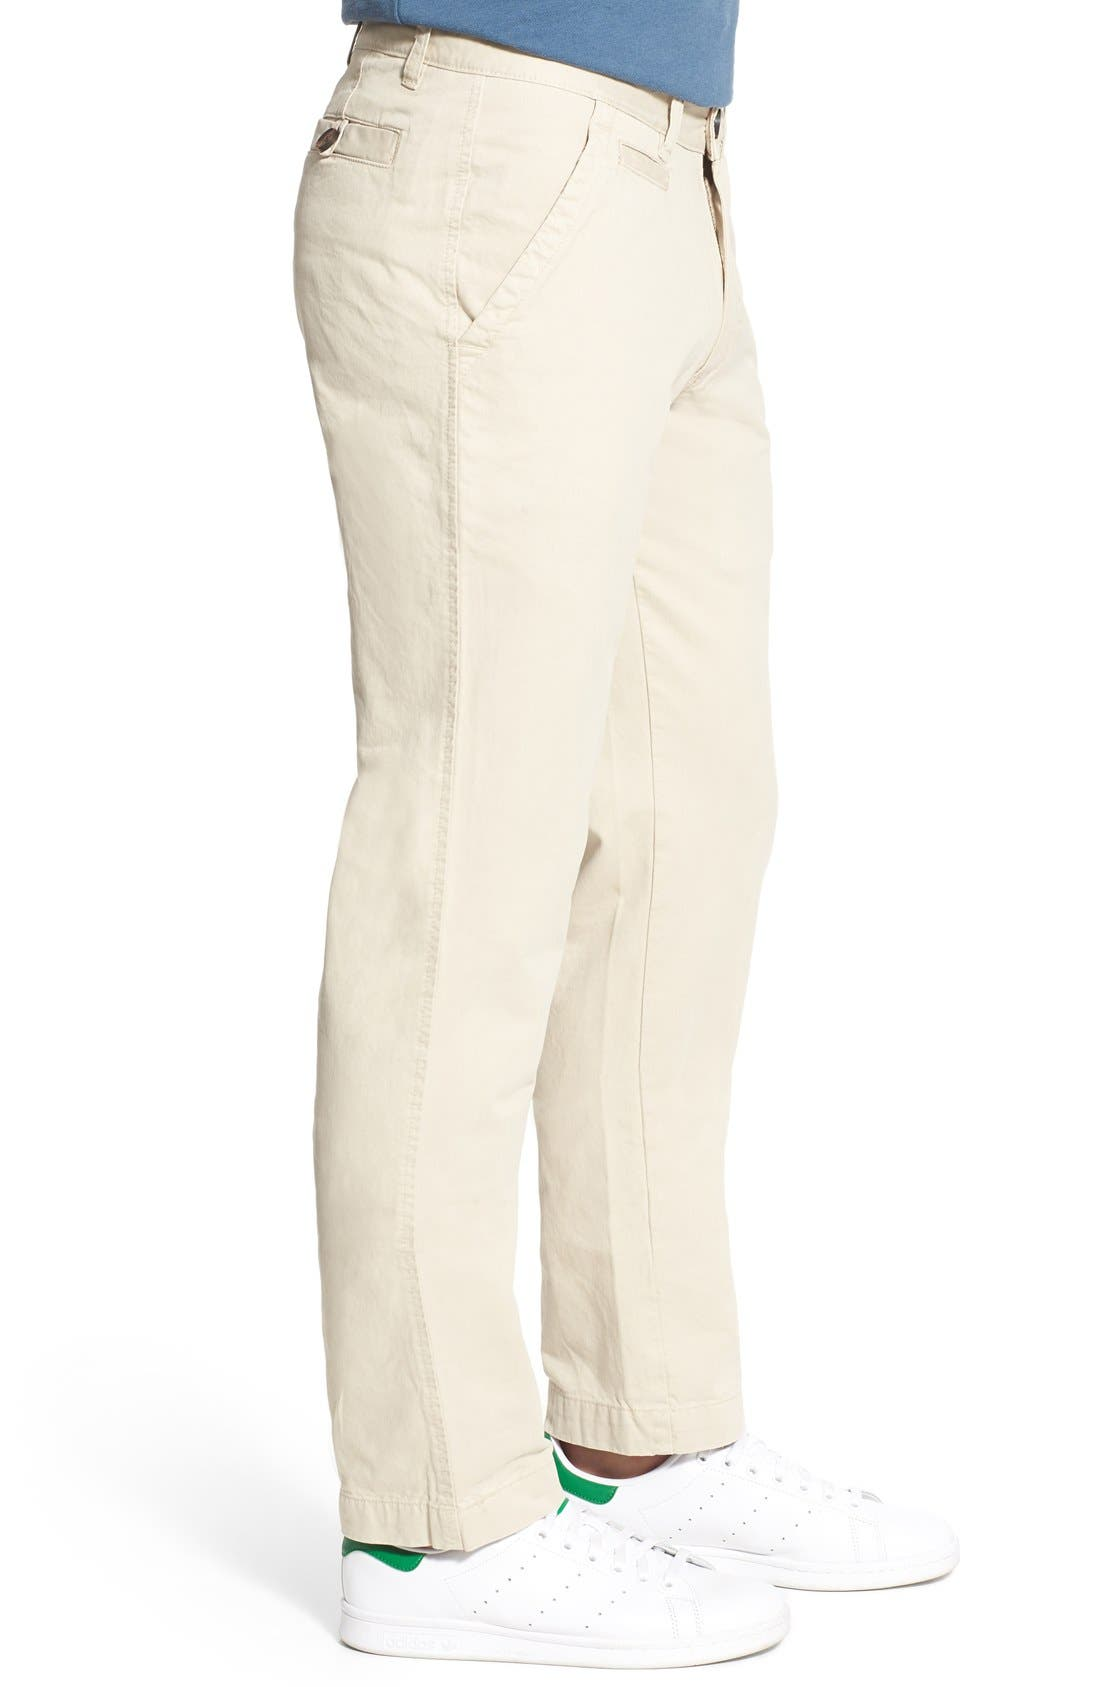 'Sahara' Trim Fit Vintage Washed Twill Chinos,                             Alternate thumbnail 3, color,                             270